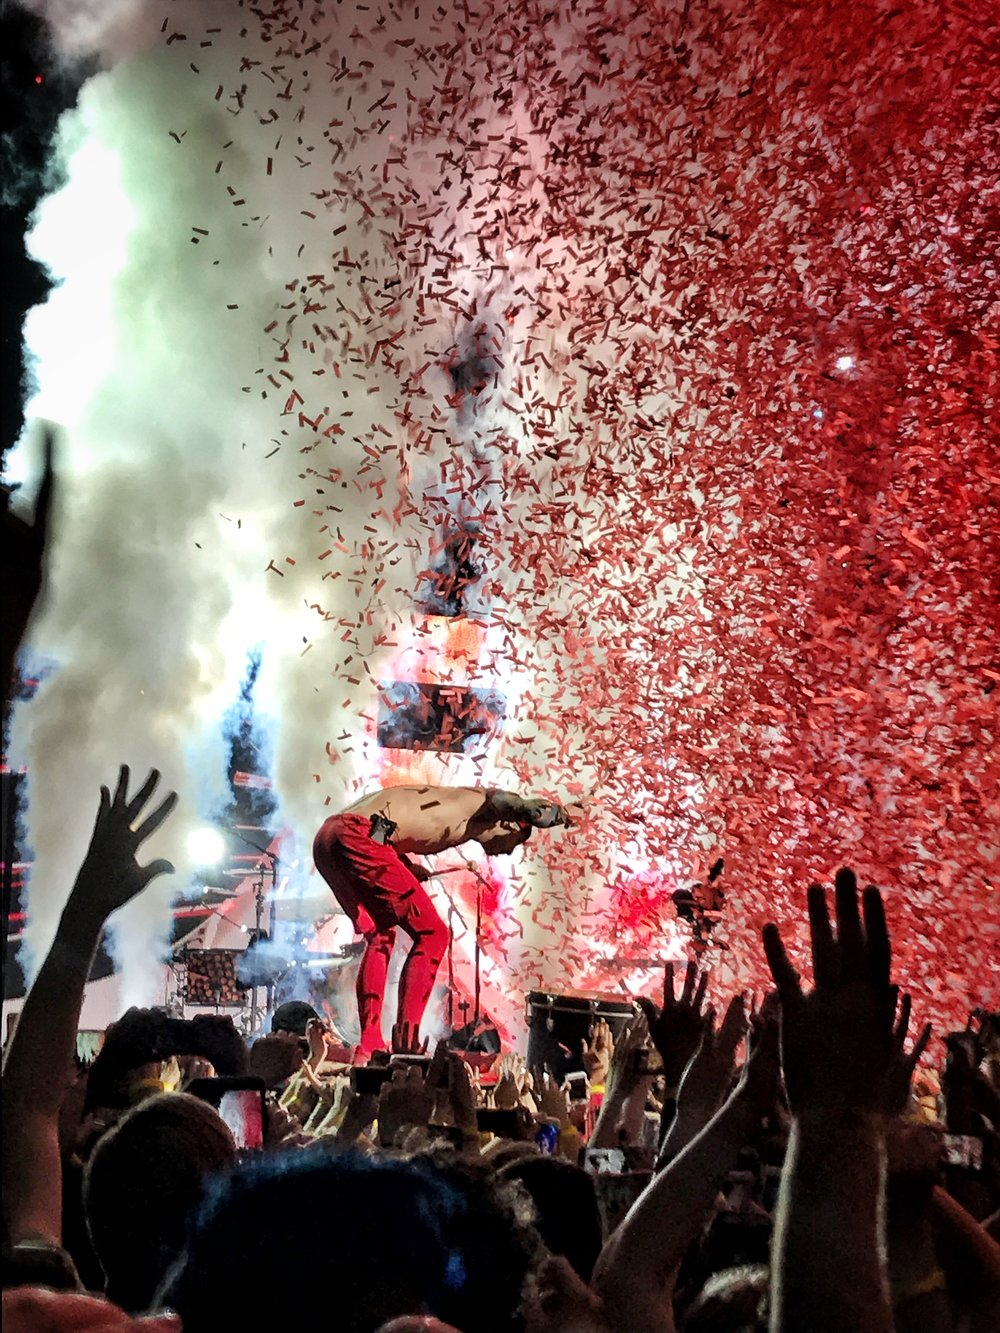 Twenty One Pilots drummer Josh Dun closing out an epic show with smoke machines and confetti at Golden 1 Center in Sacramento, California.